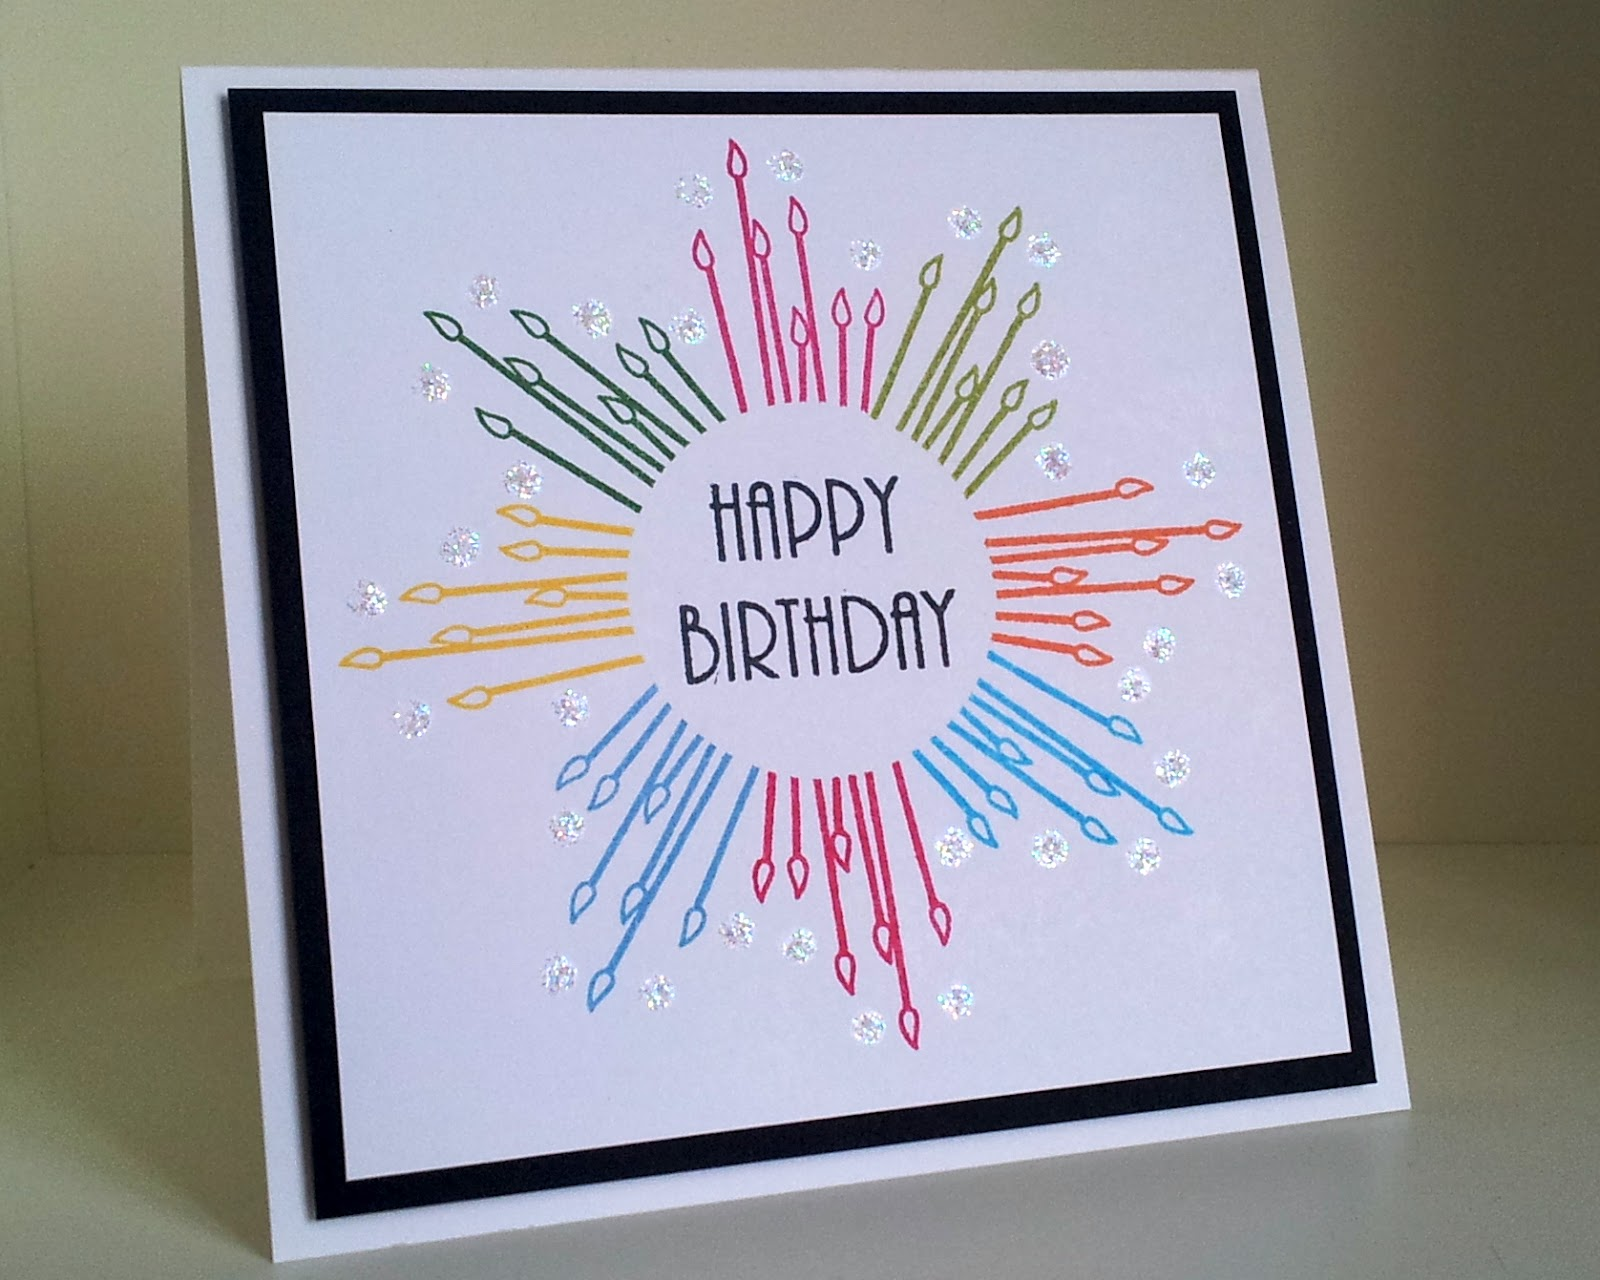 easy card making ideas for birthday ; Outlawz-Cas-Week-Happy-Birthday-Ht-Simple-How-To-Make-A-Happy-Birthday-Card